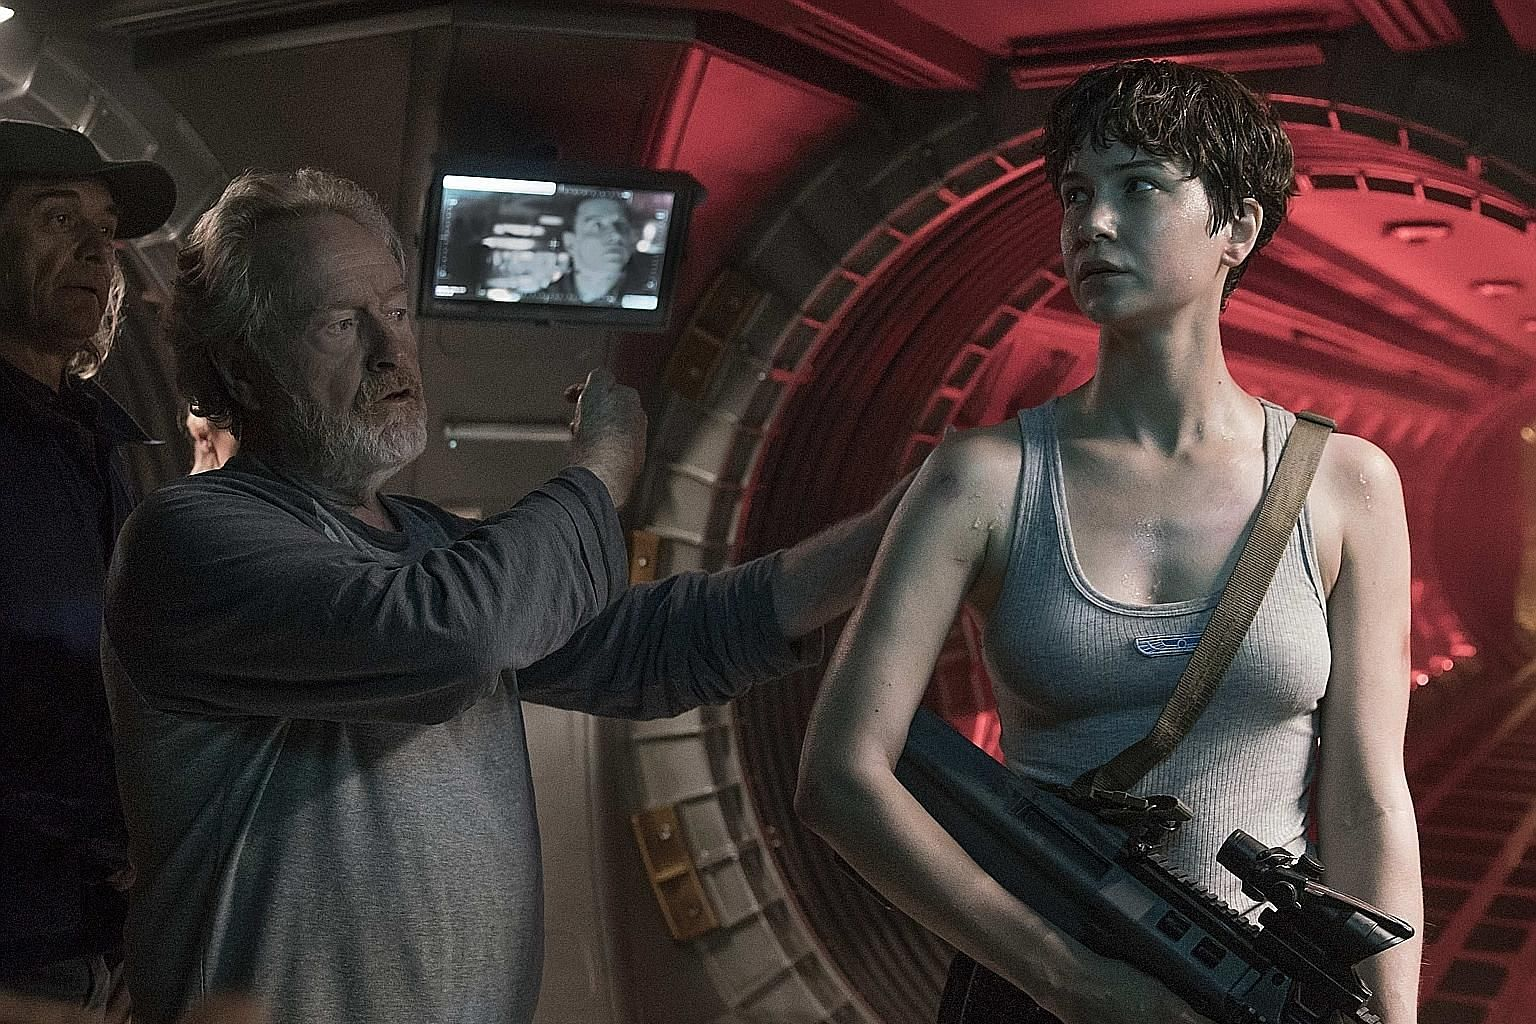 Director Ridley Scott with Katherine Waterston, who plays crew member Daniels in Alien: Covenant.